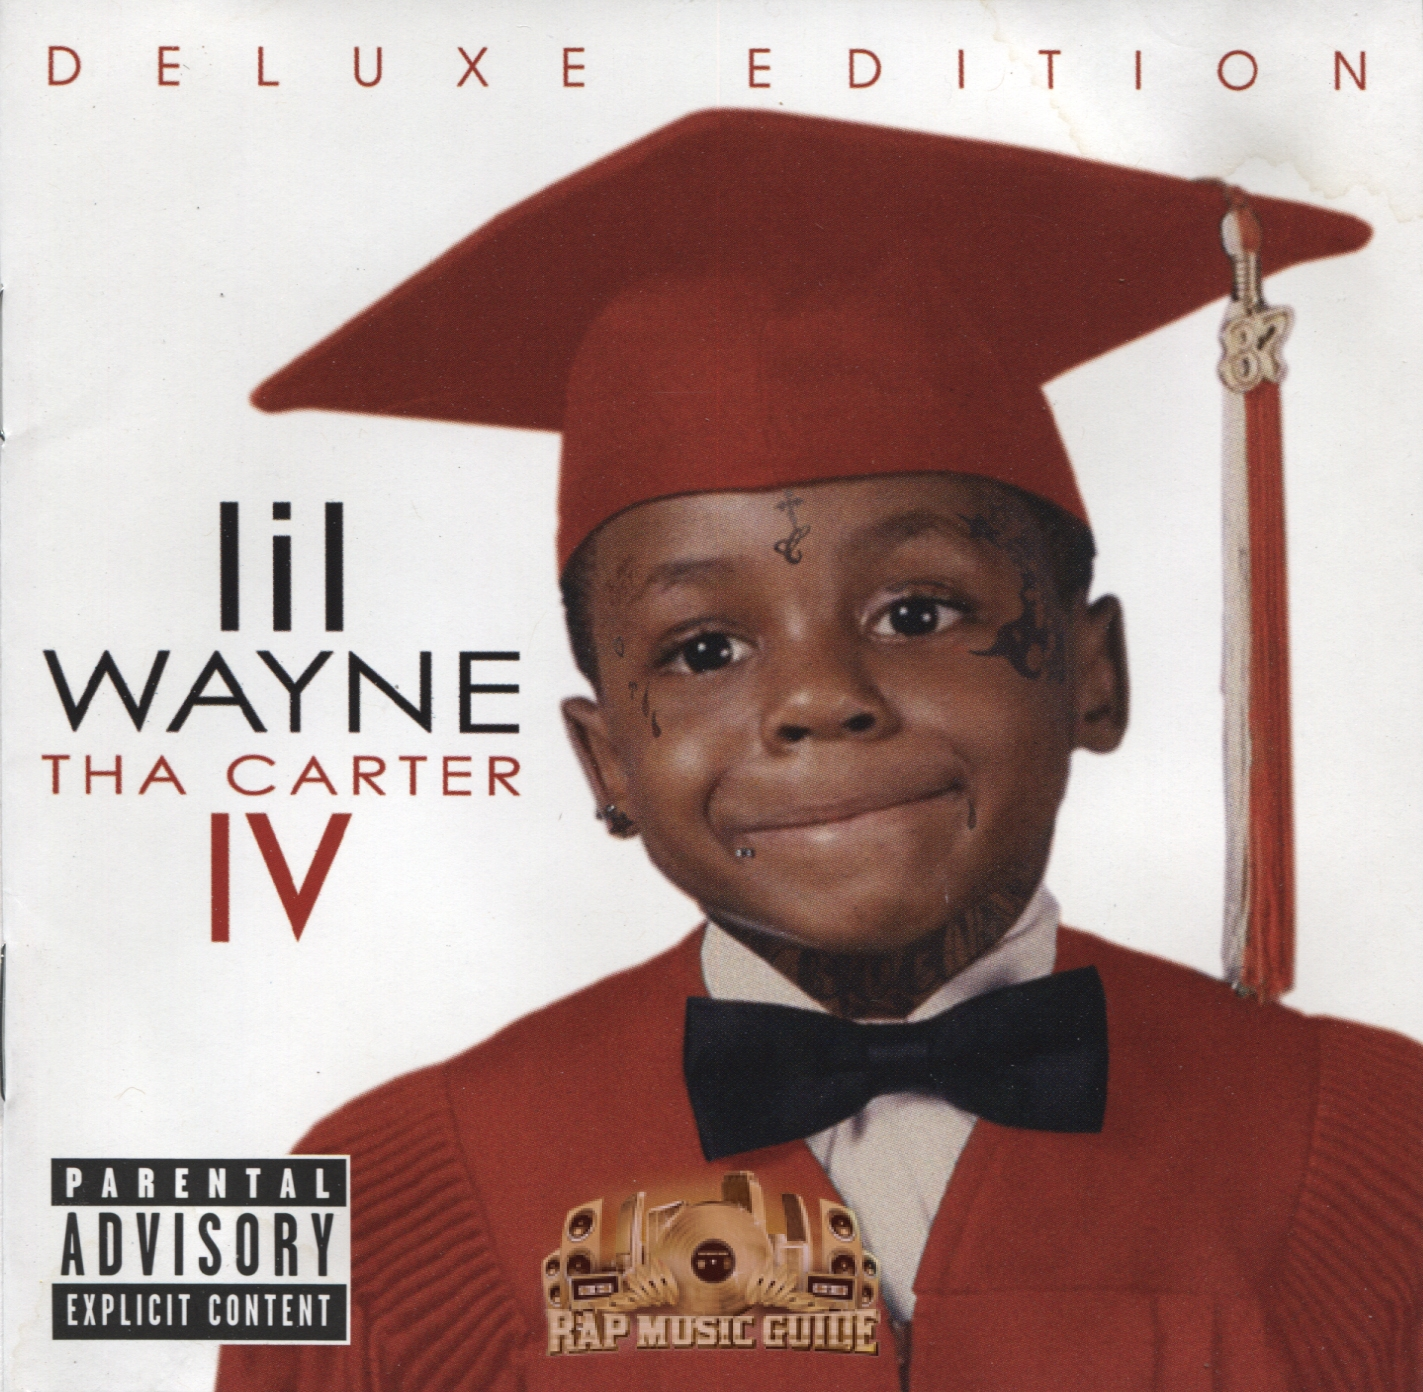 Lil wayne tha carter iv deluxe edition cds rap music guide